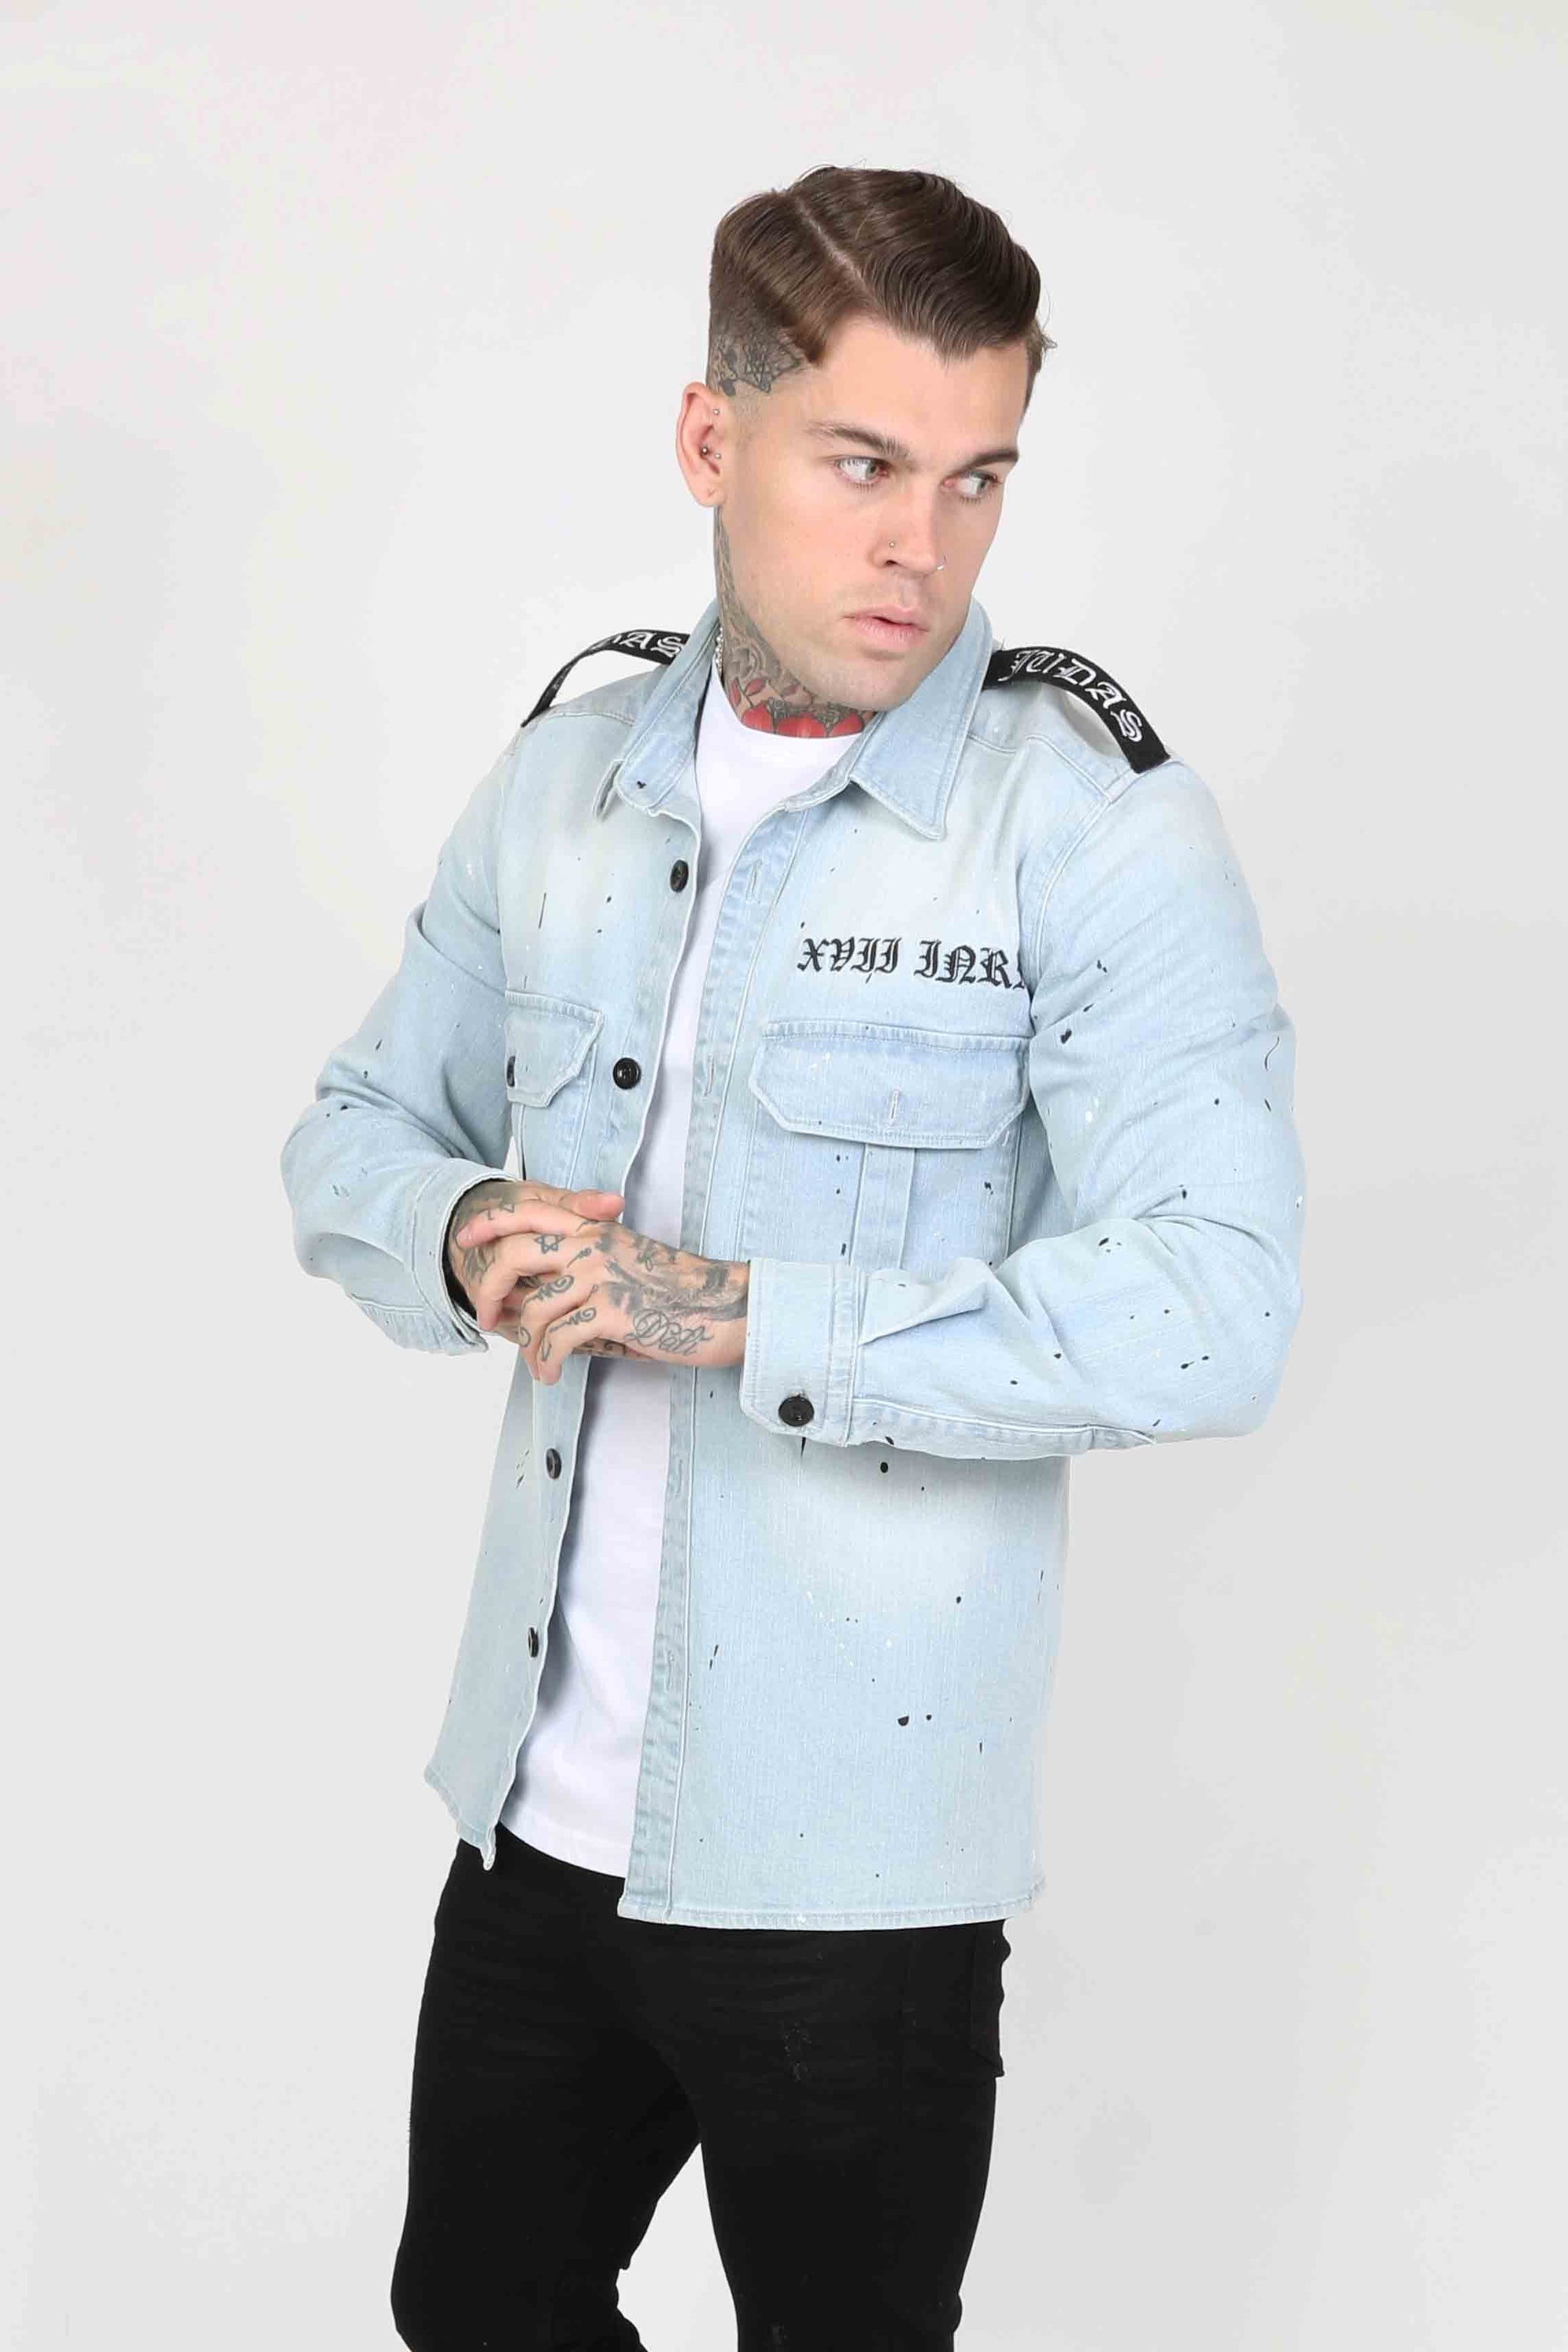 Milli Badge Crystal Men's Overshirt - Light Wash Denim - Judas Sinned Clothing